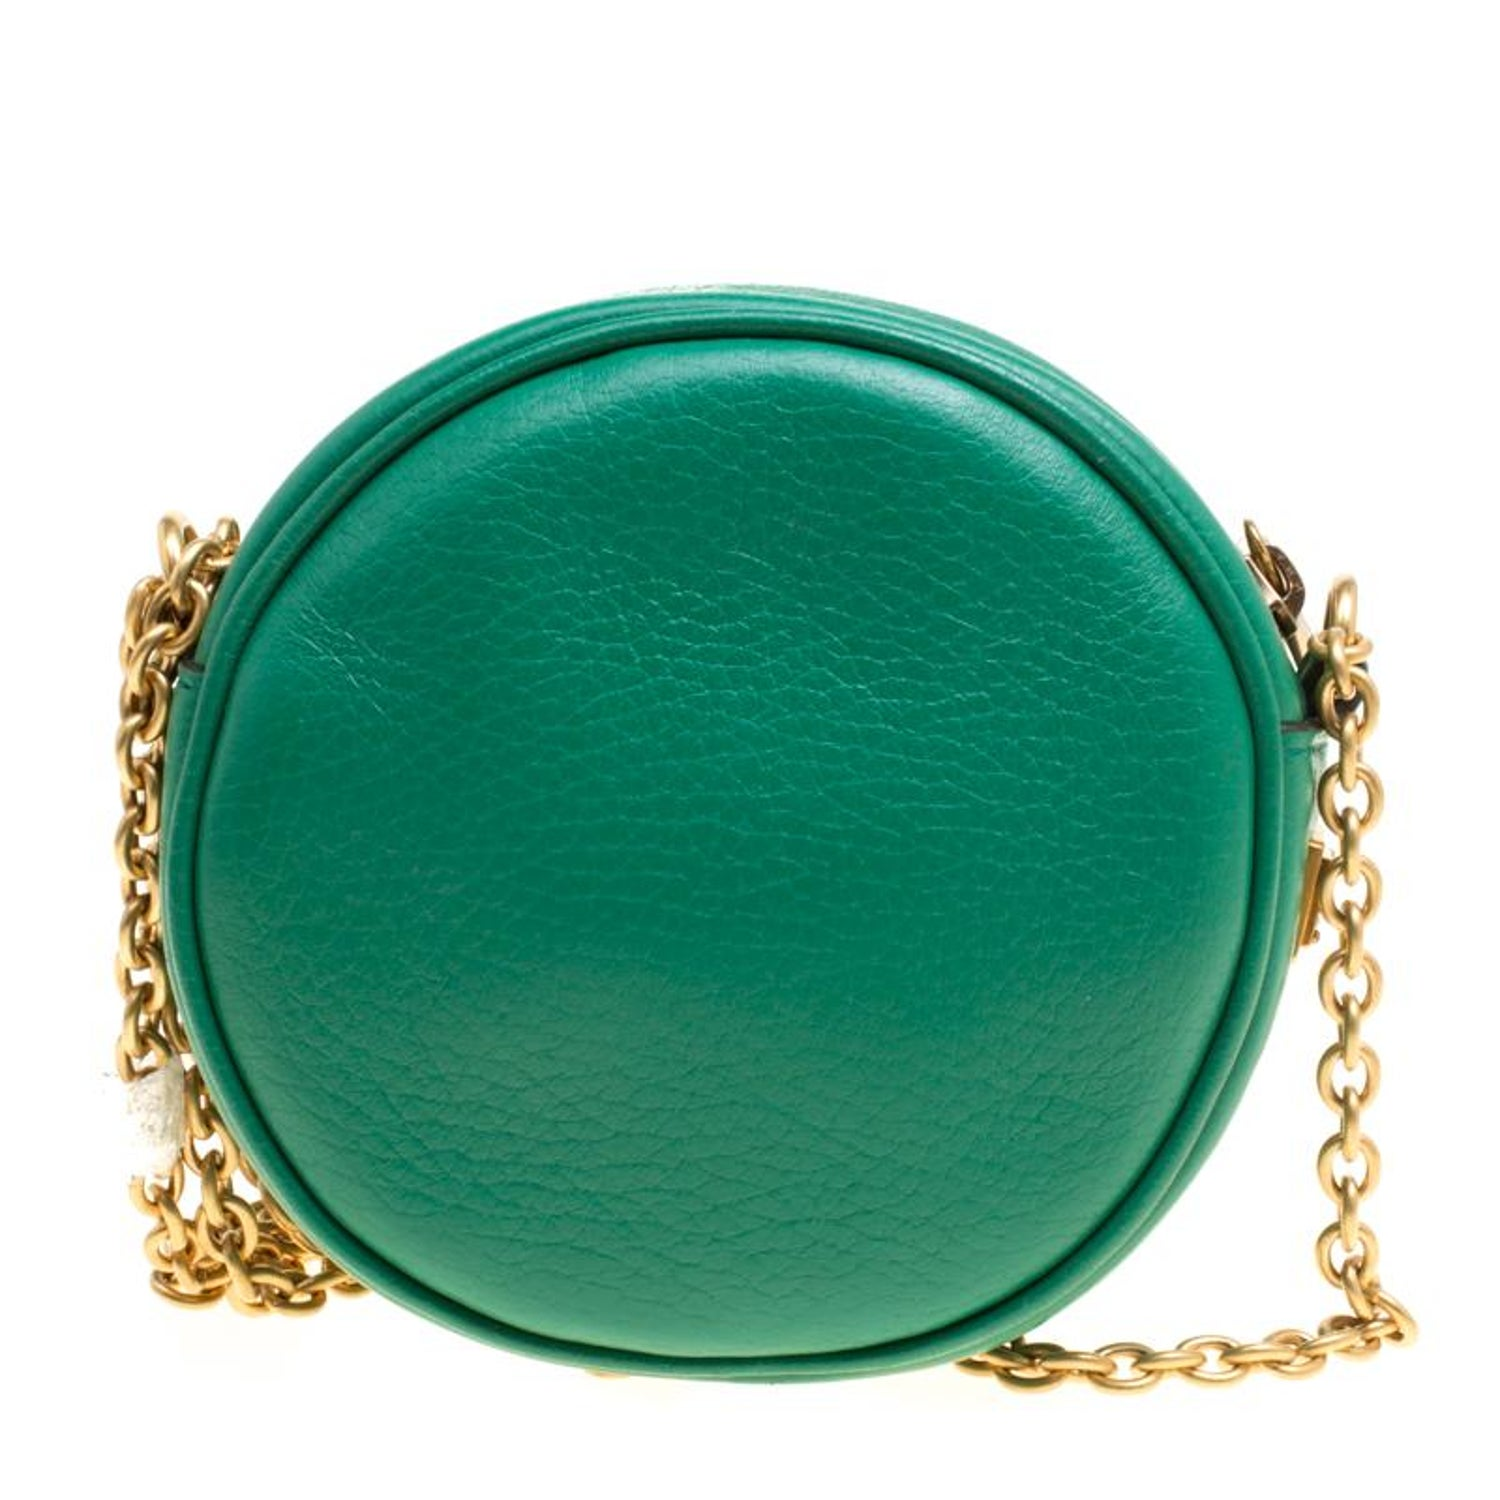 Dolce and Gabbana Green Leather Small Charm Miss Glam Crossbody Bag at  1stdibs 544599c7db831